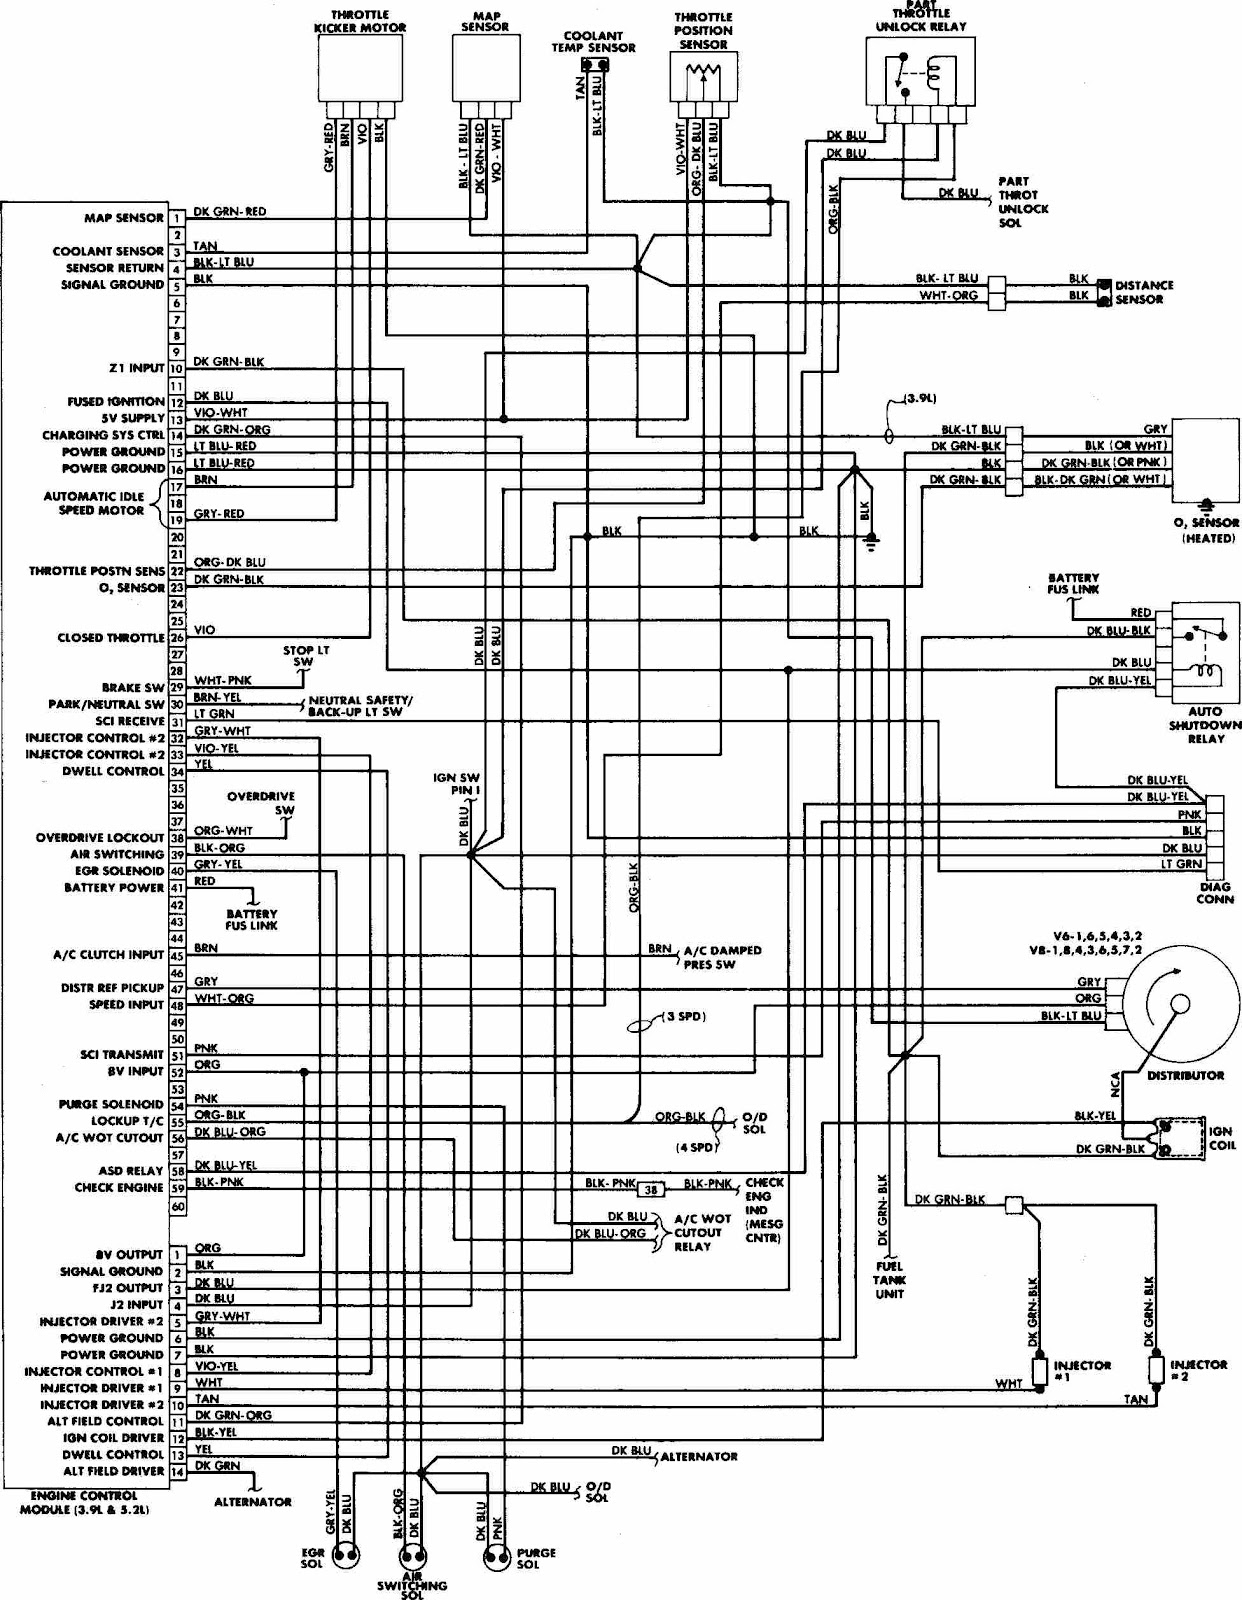 1988 Dodge 3 9 Engine Diagram | Wiring Library